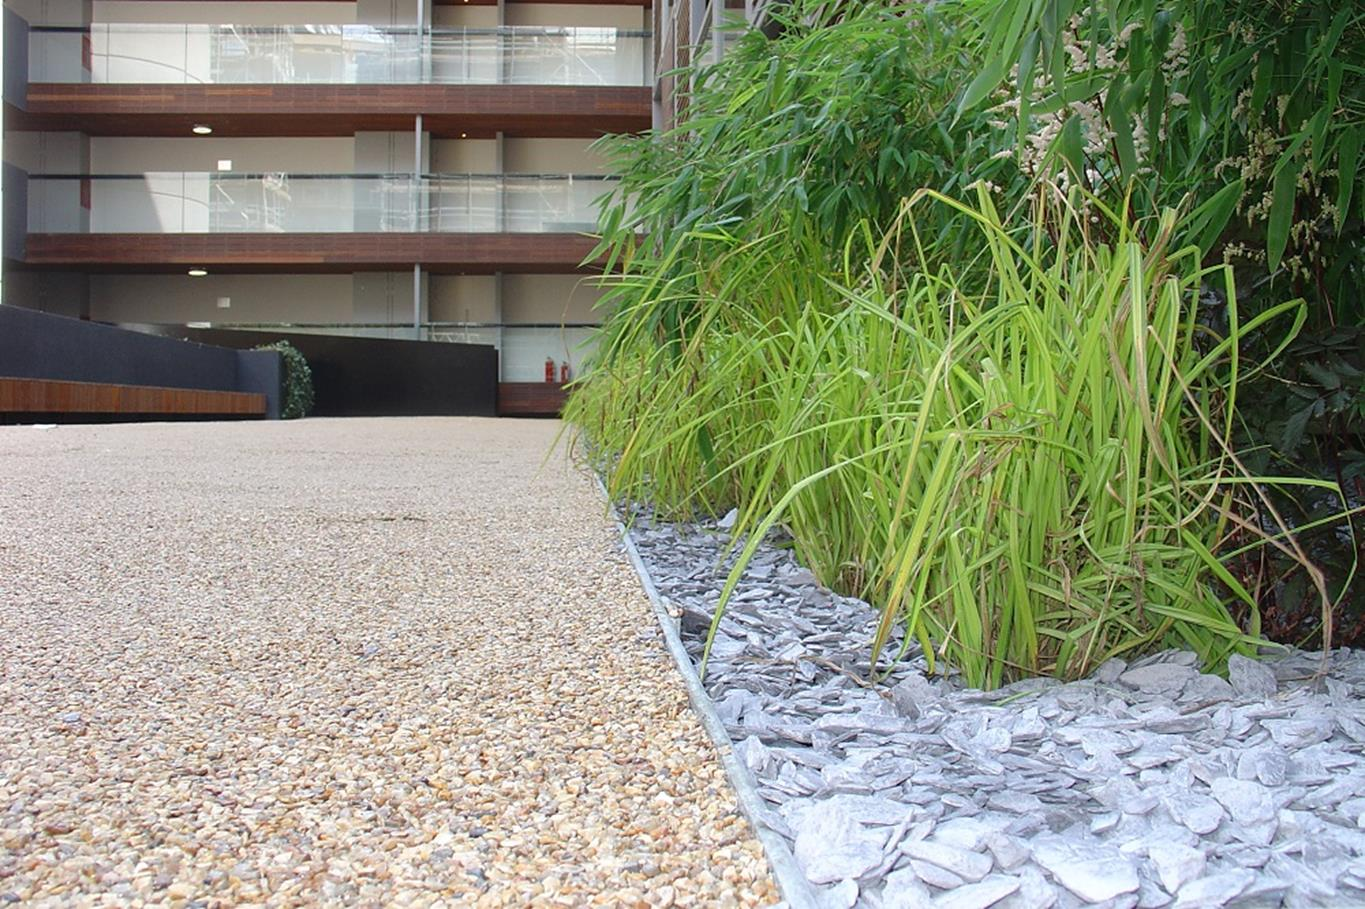 Creating a green haven for pioneering apartments